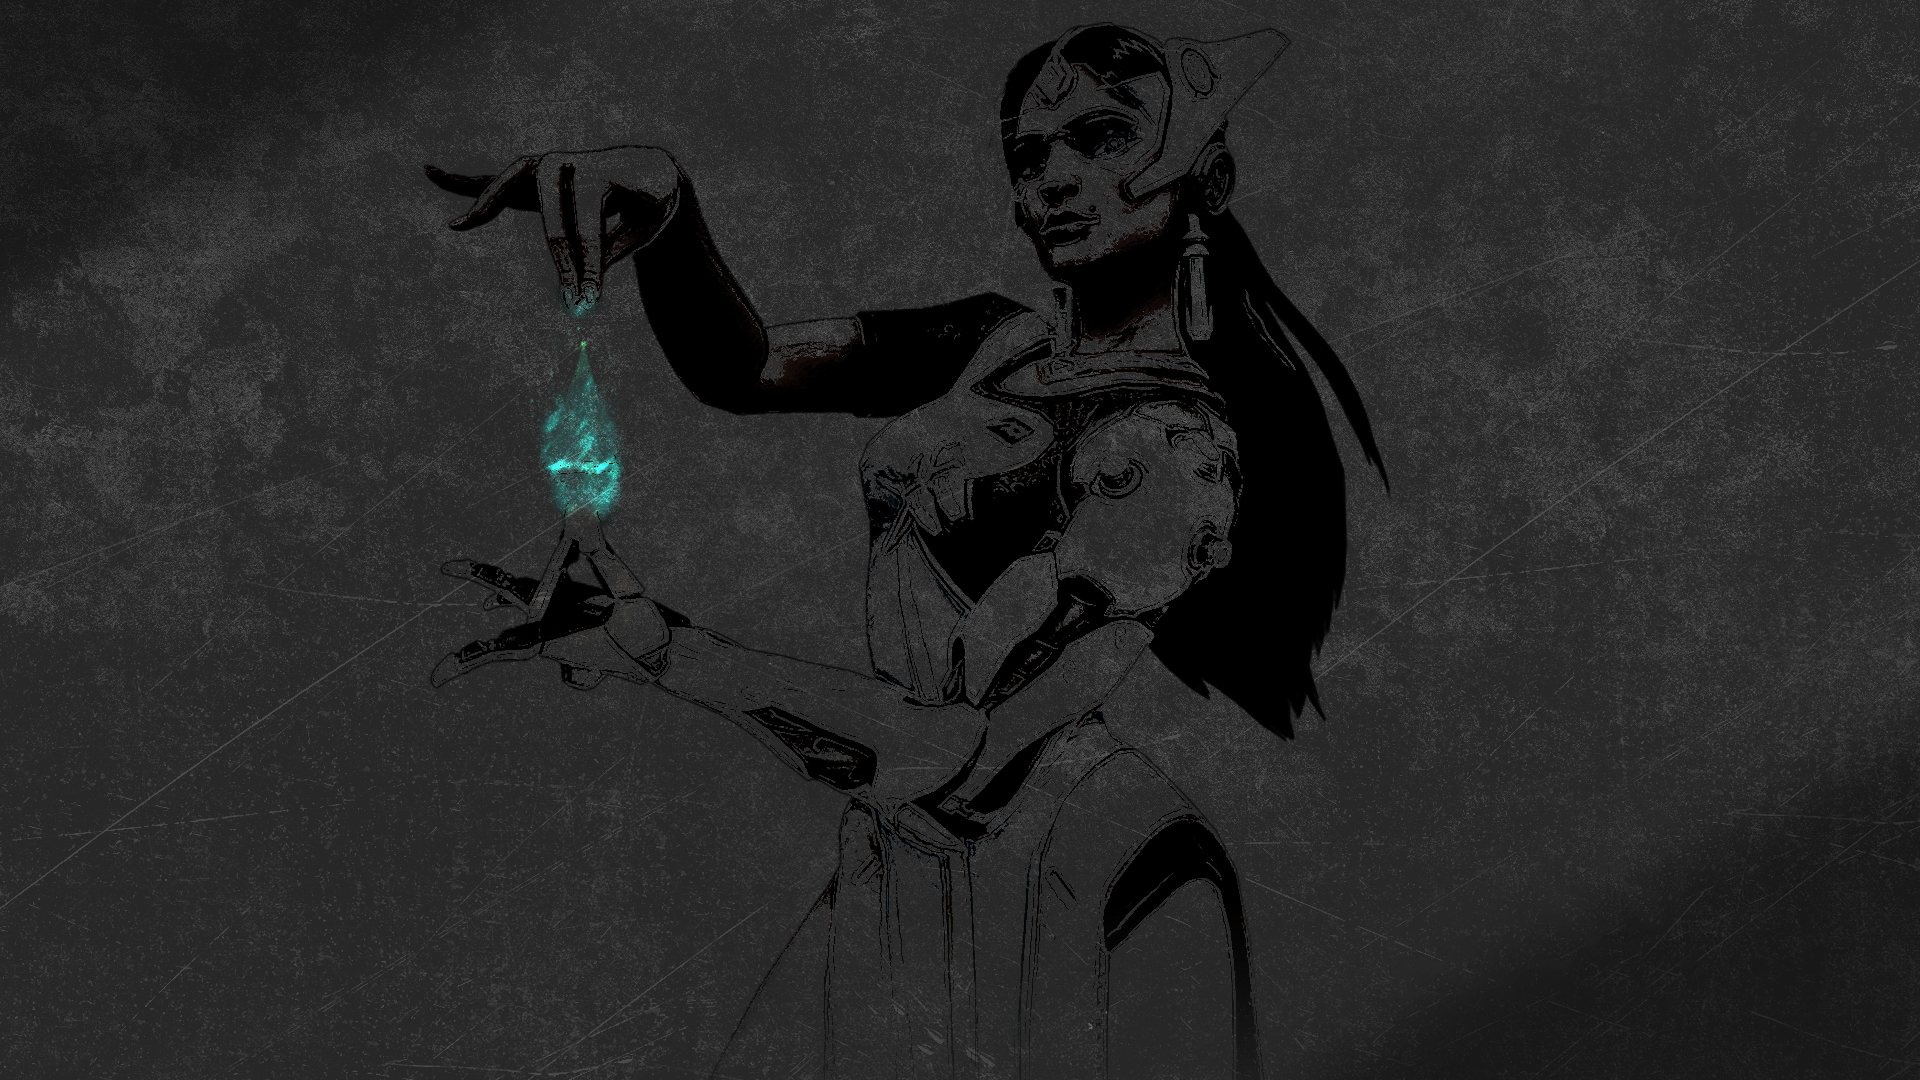 General 1920x1080 Overwatch Symmetra (Overwatch) video games video game art dark gray